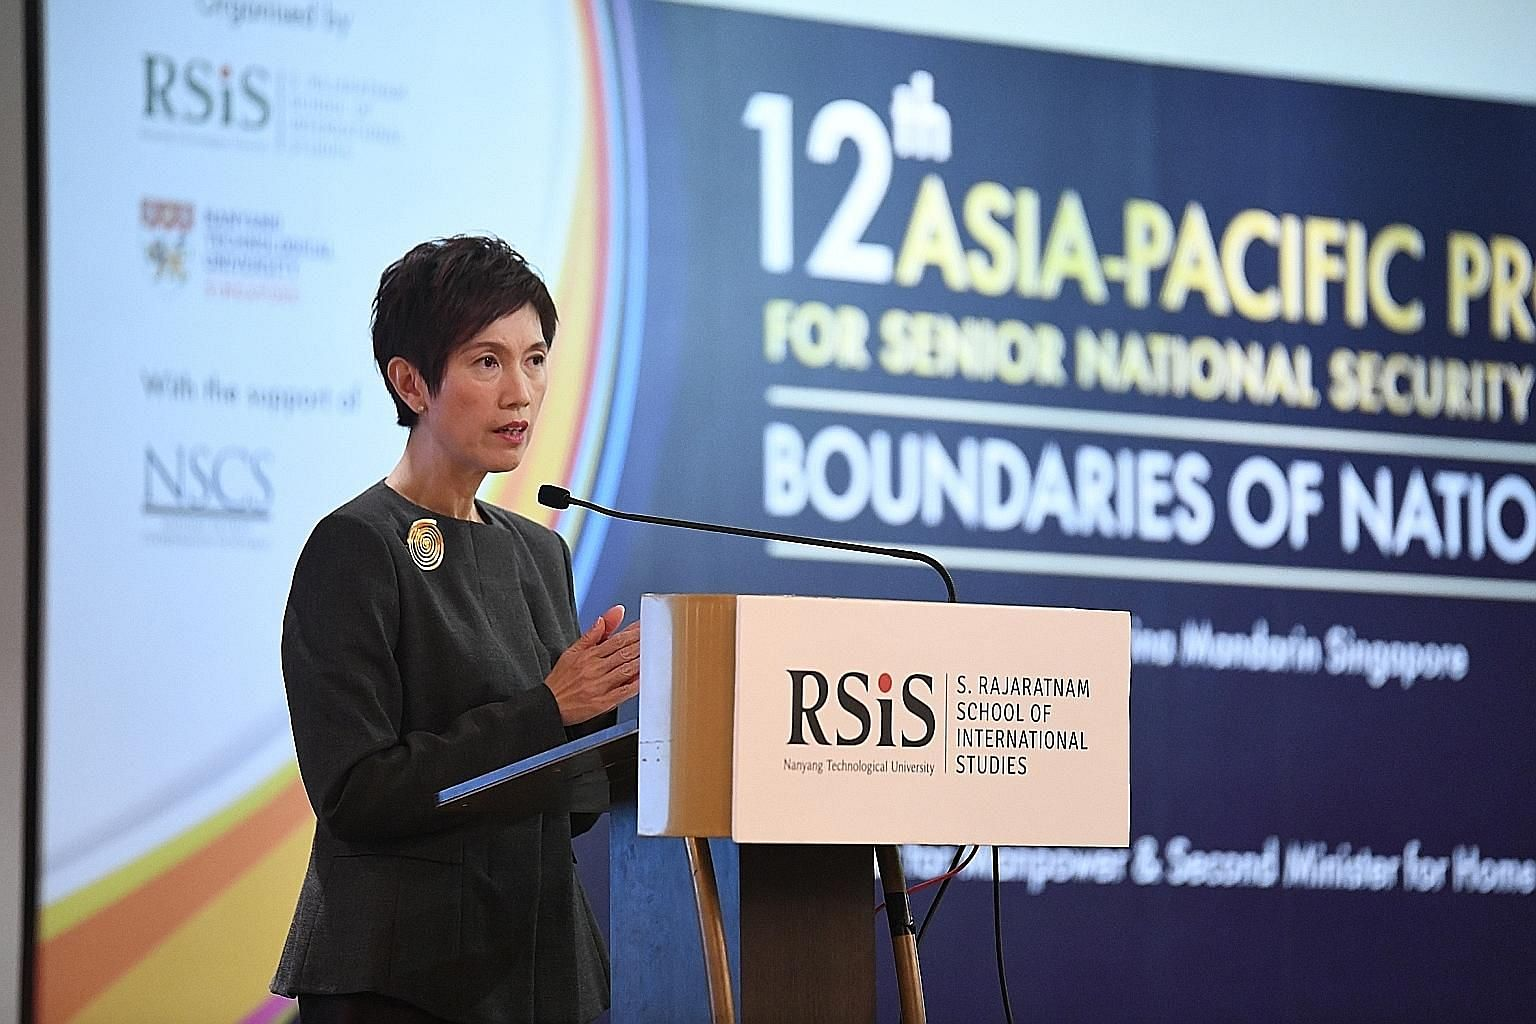 """""""The community has a role to play, to enlarge the common social space, and foster mutual understanding and trust,"""" said Mrs Teo. Business and technology firms can also help to boost cyber security and to prevent the spread of falsehoods and hate spee"""